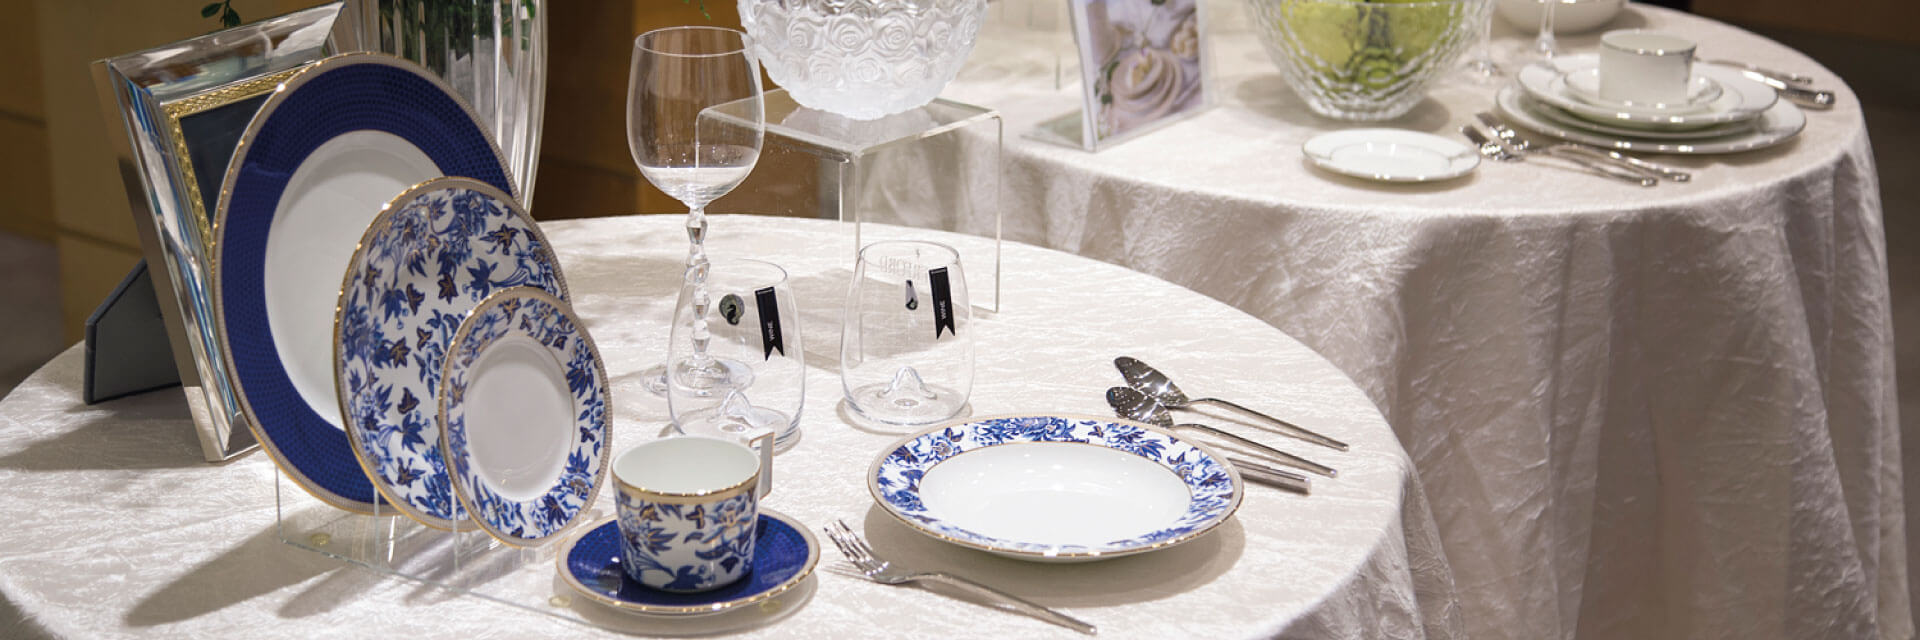 Kirk freeport gift registry duty free store in grand cayman for Top 10 wedding registry stores